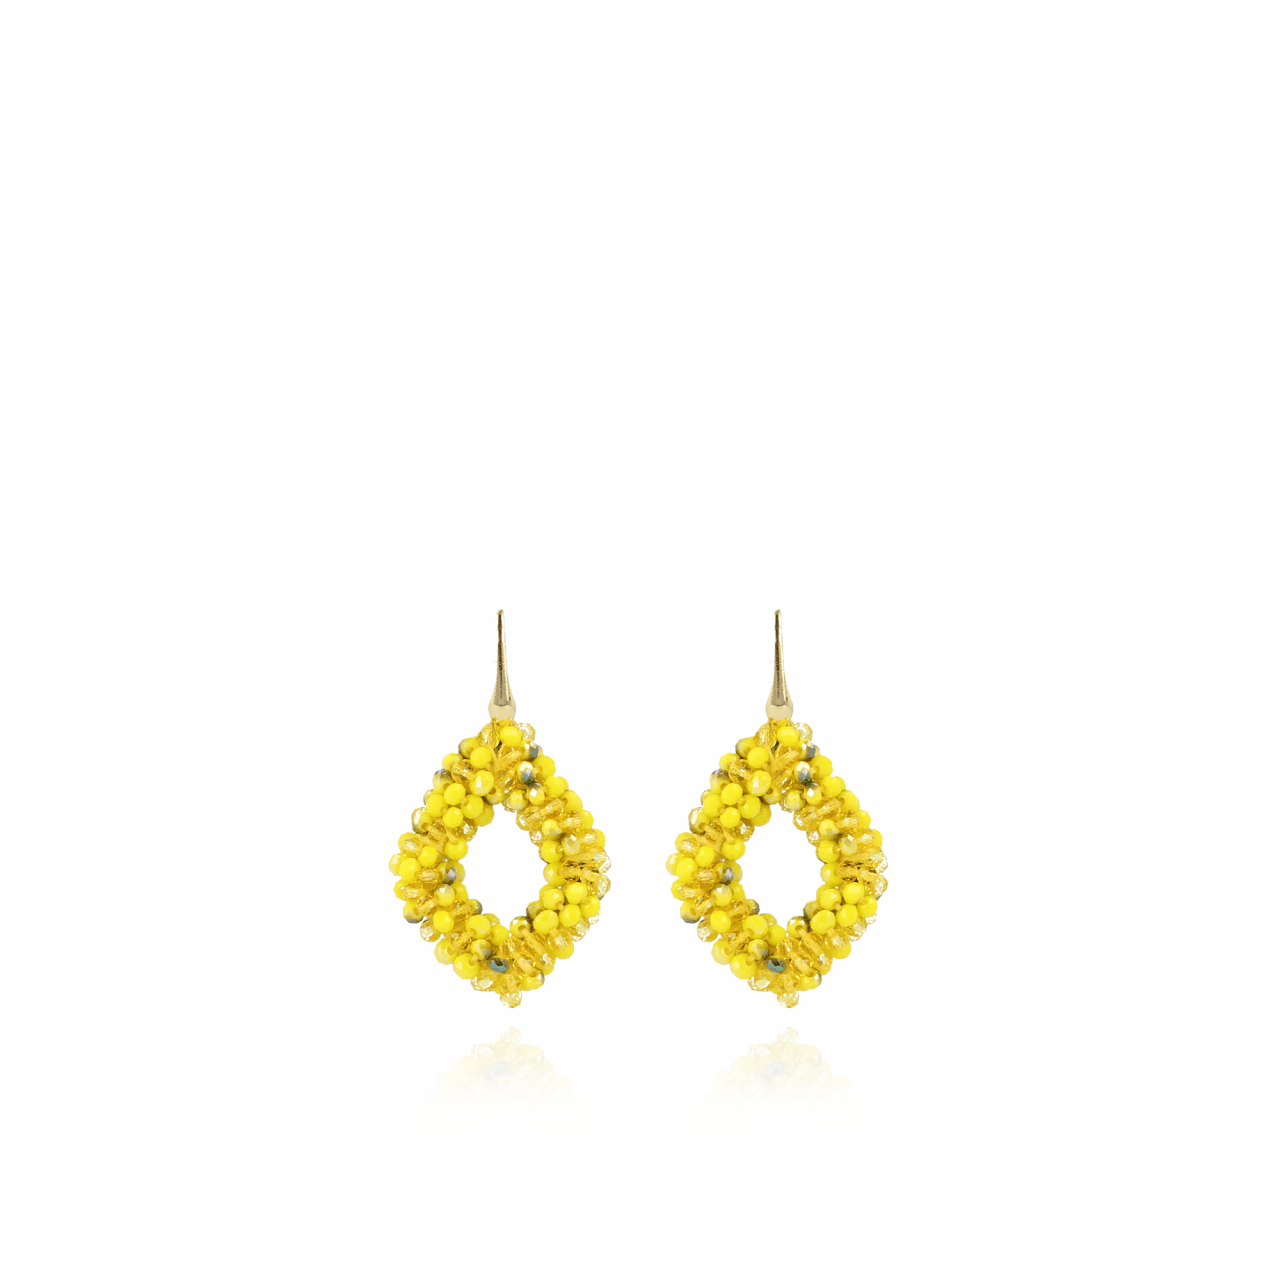 Boucles d'oreilles ace glassberry jaune